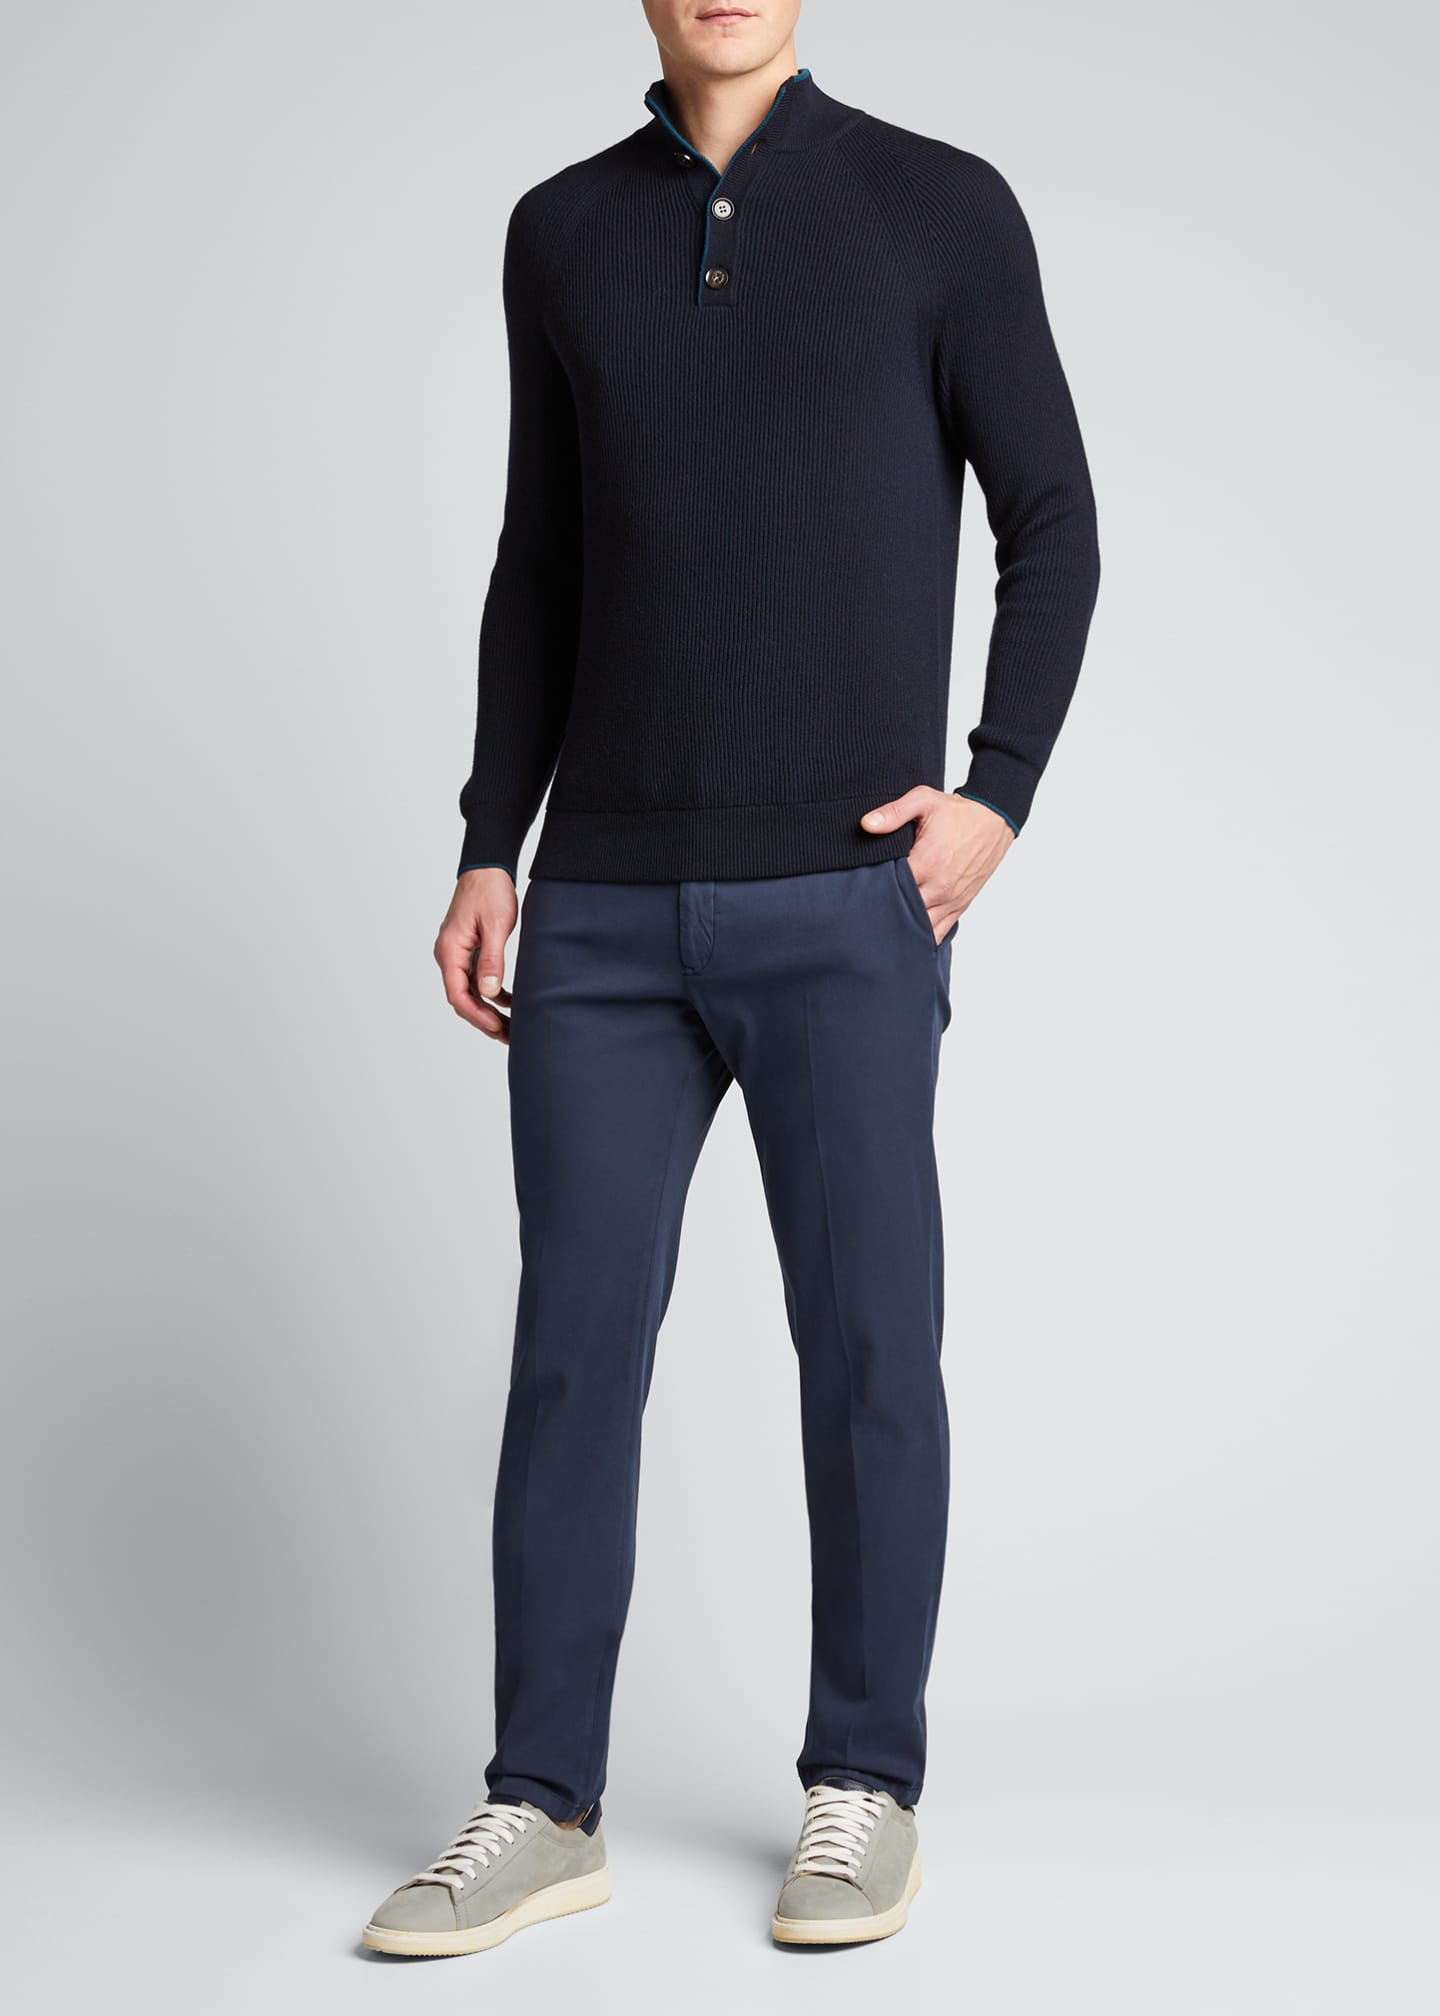 Image 1 of 5: Men's Riverside Mezzocolo Cashmere Sweater